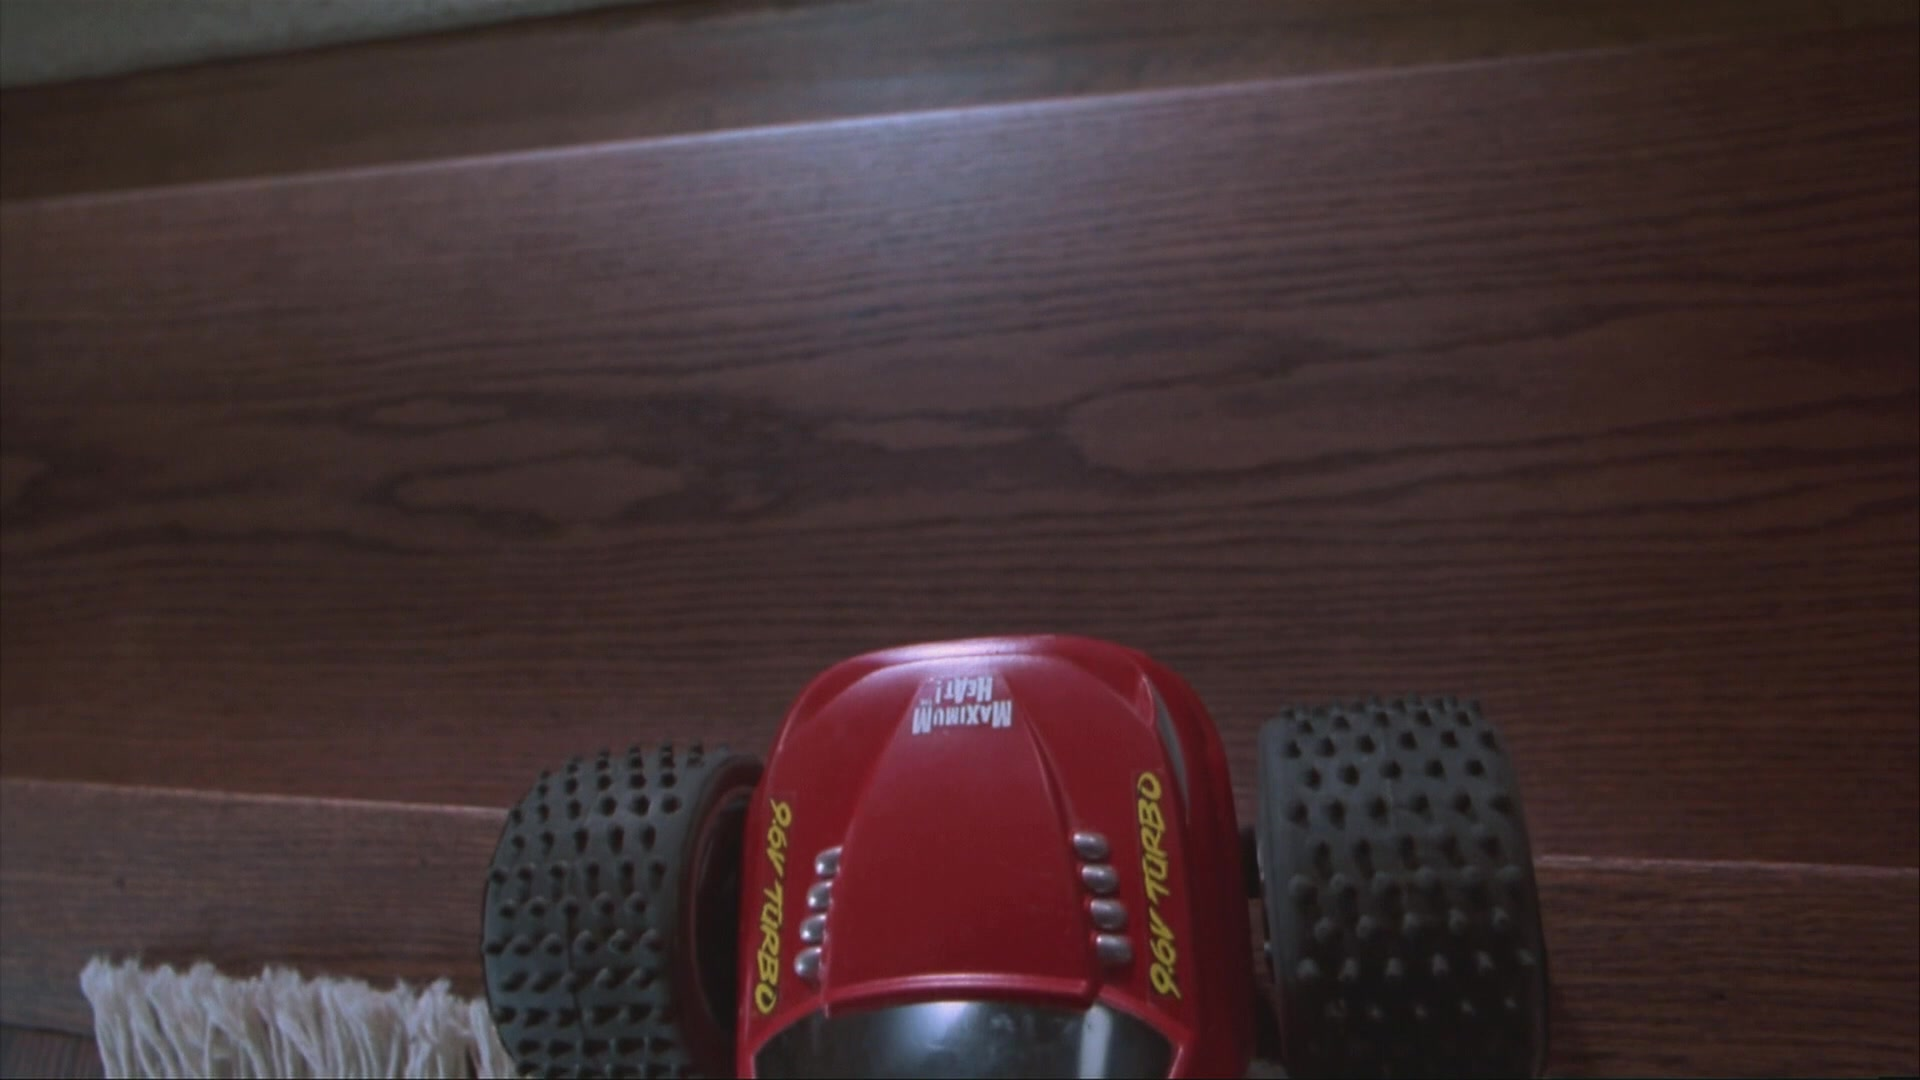 Babies Remote Toys Tyco Mutator R C Remote Control Car In Home Alone 3 1997